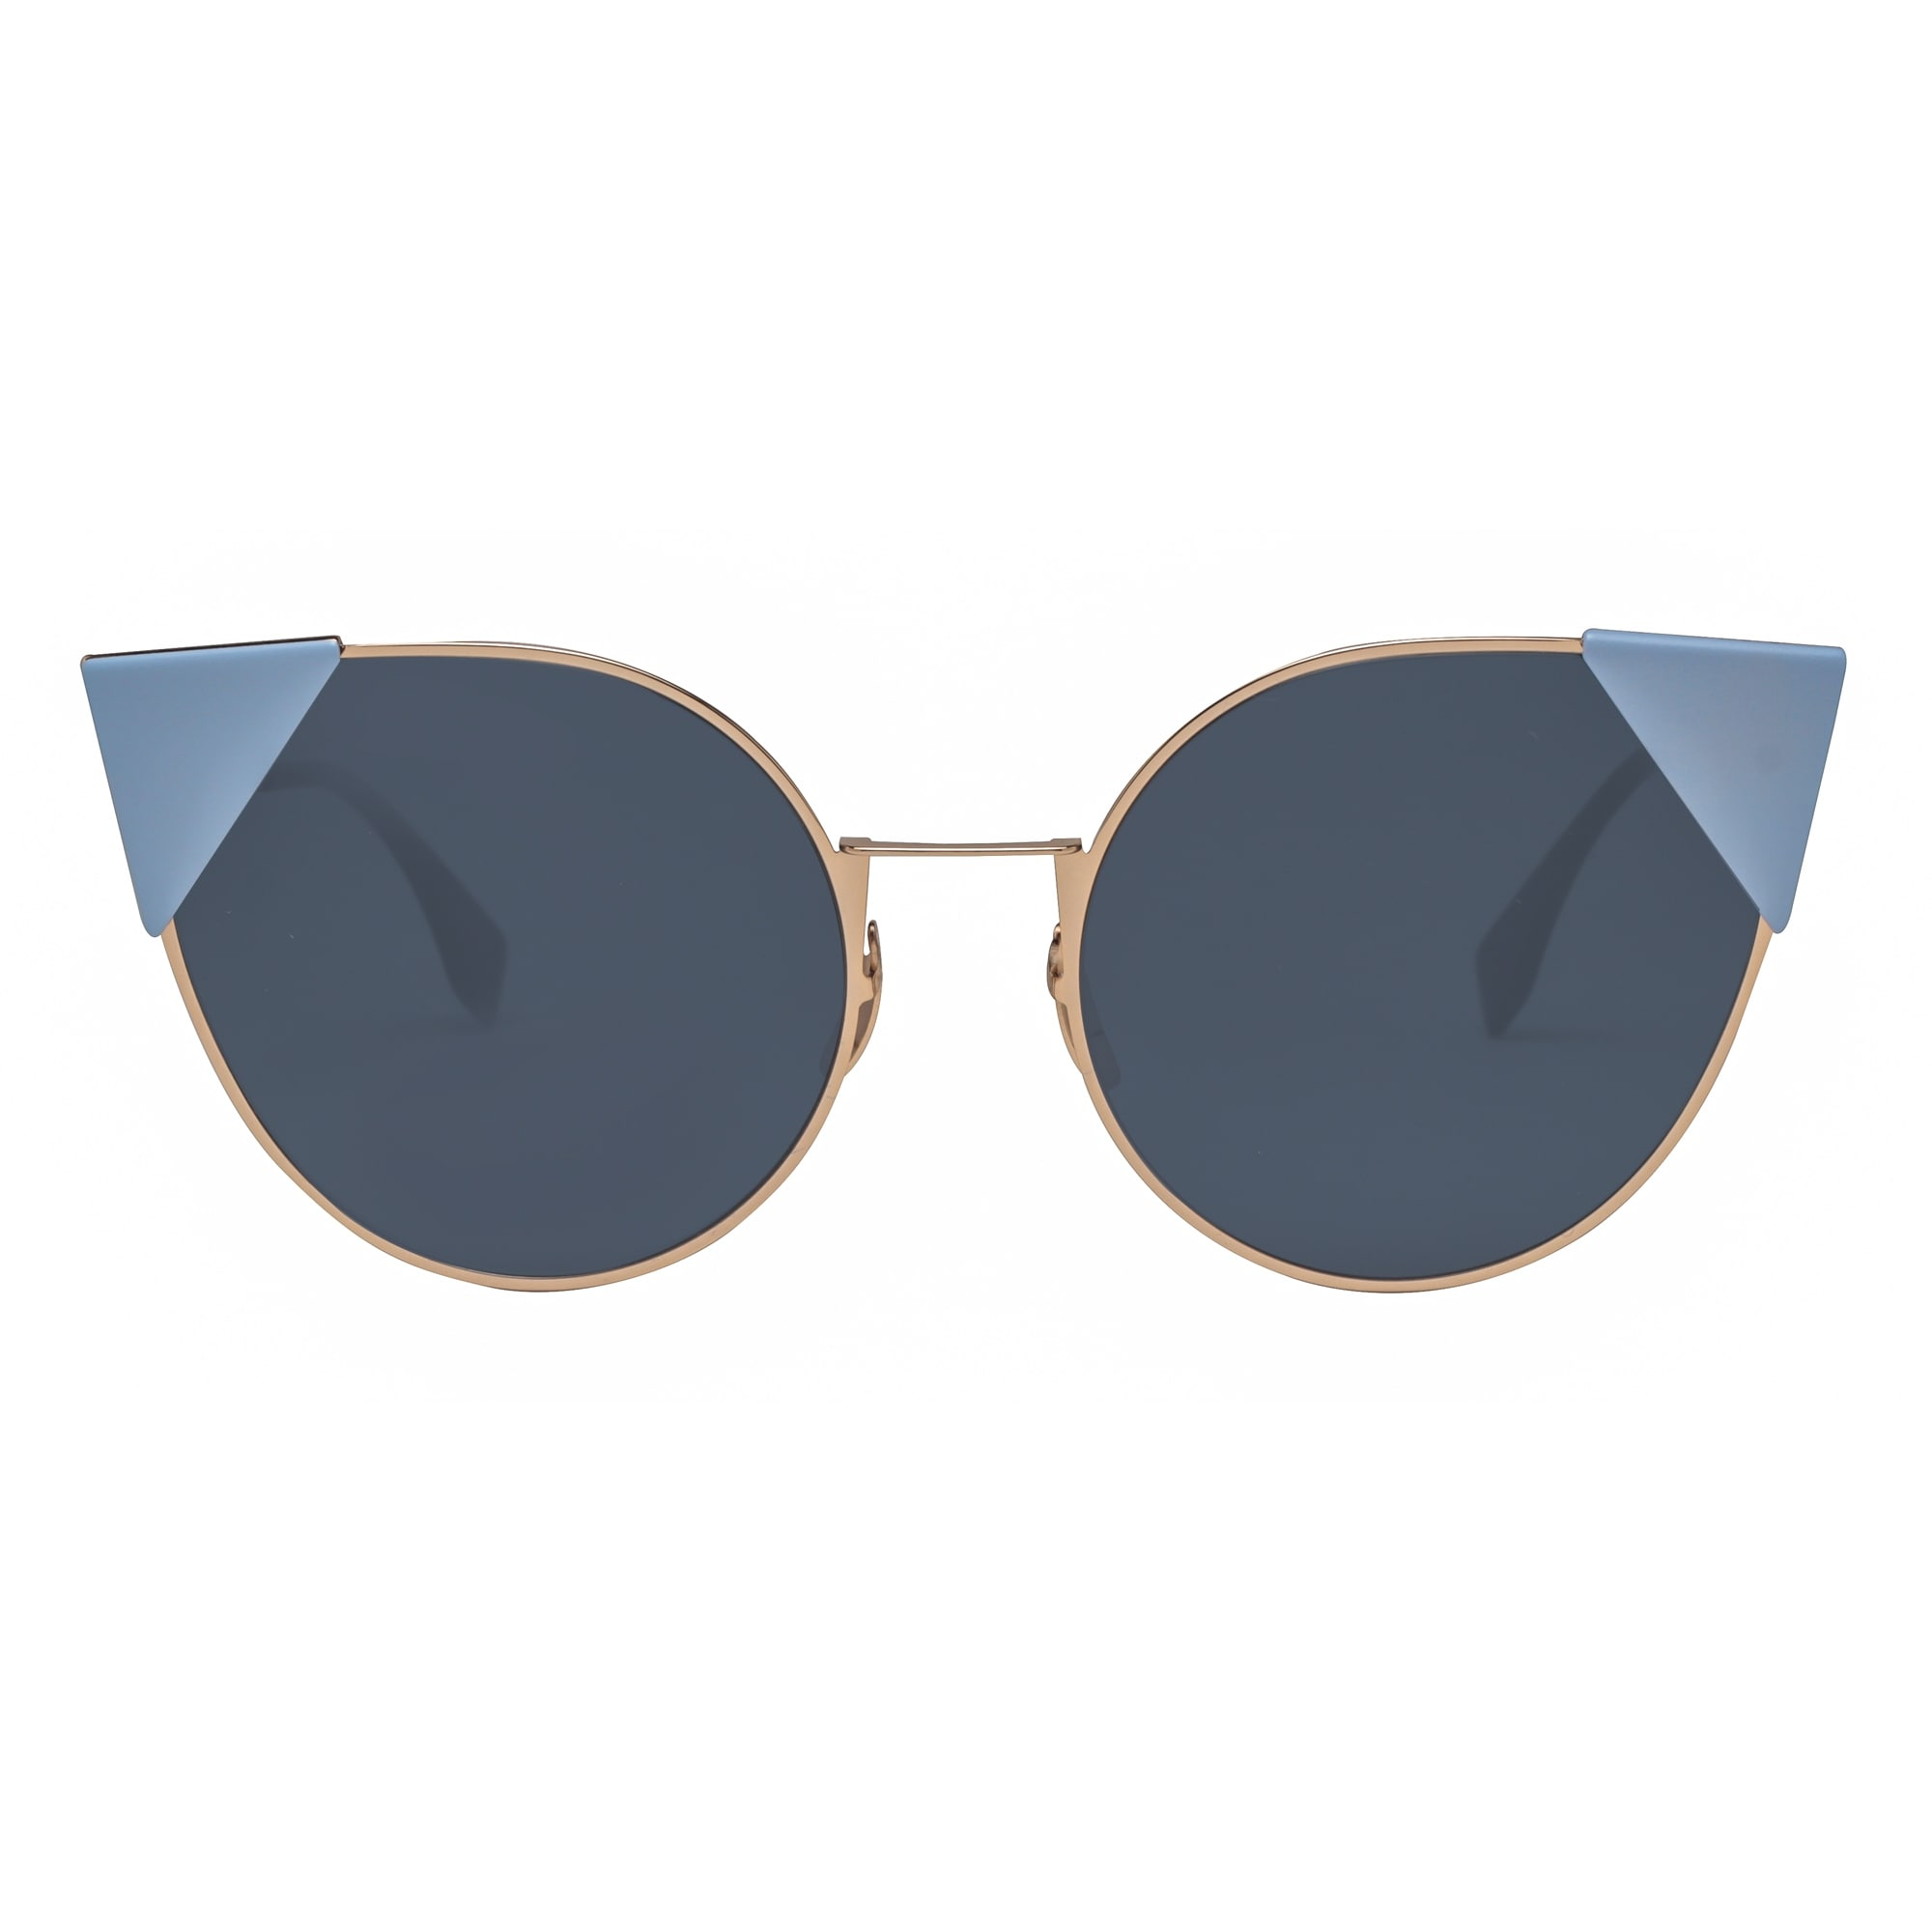 6743f26c9e Shop Fendi FF 0190 S 000A9 Lei Rose Gold Blue Round Cat Eye Sunglasses -  rose gold - 57mm-19mm-140mm - Free Shipping Today - Overstock - 18656405